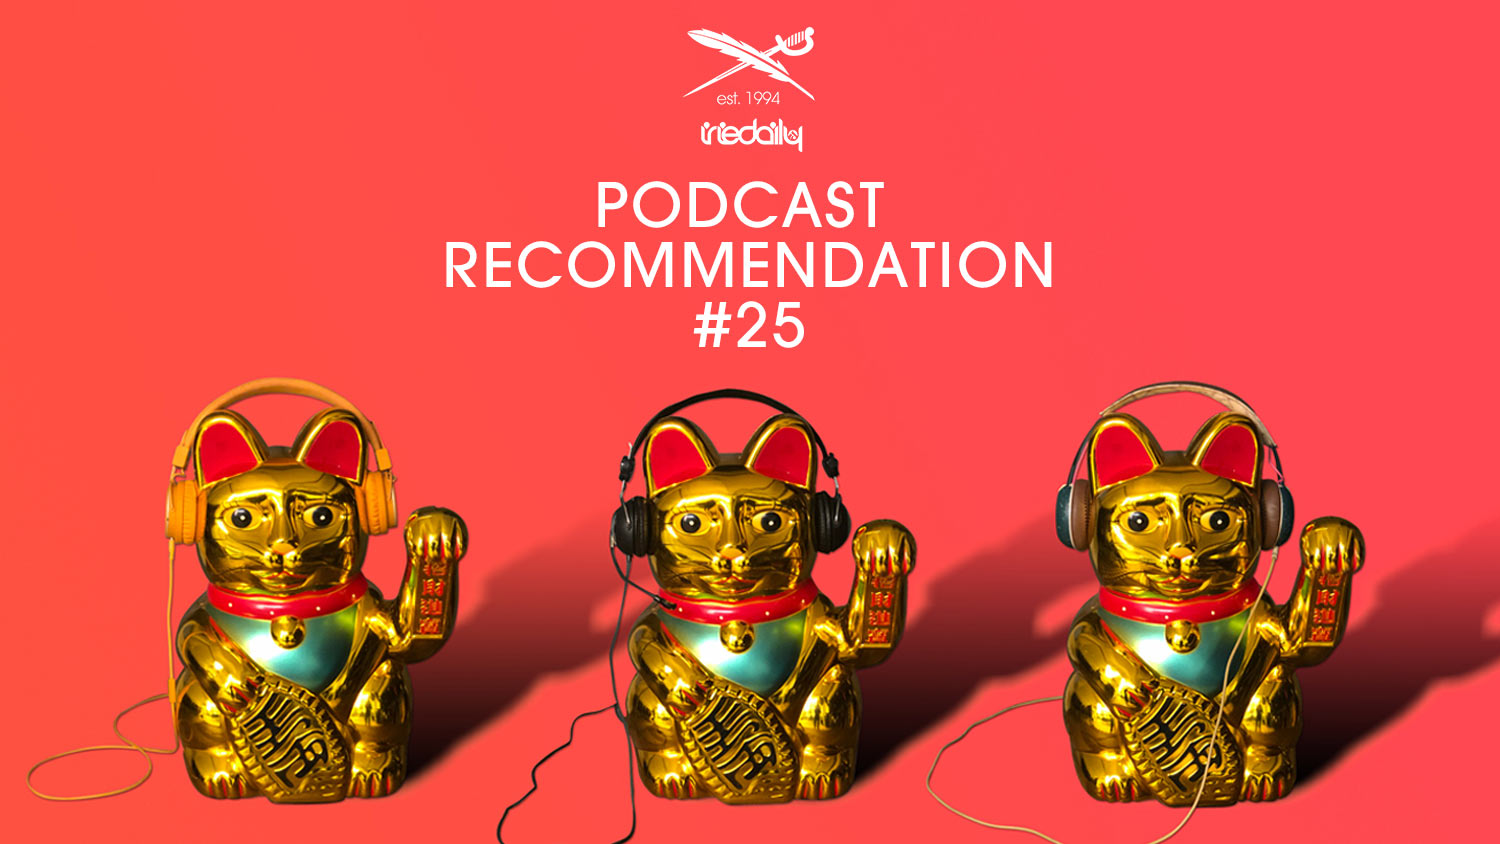 IRIEDAILY Podcast Recommendation #25